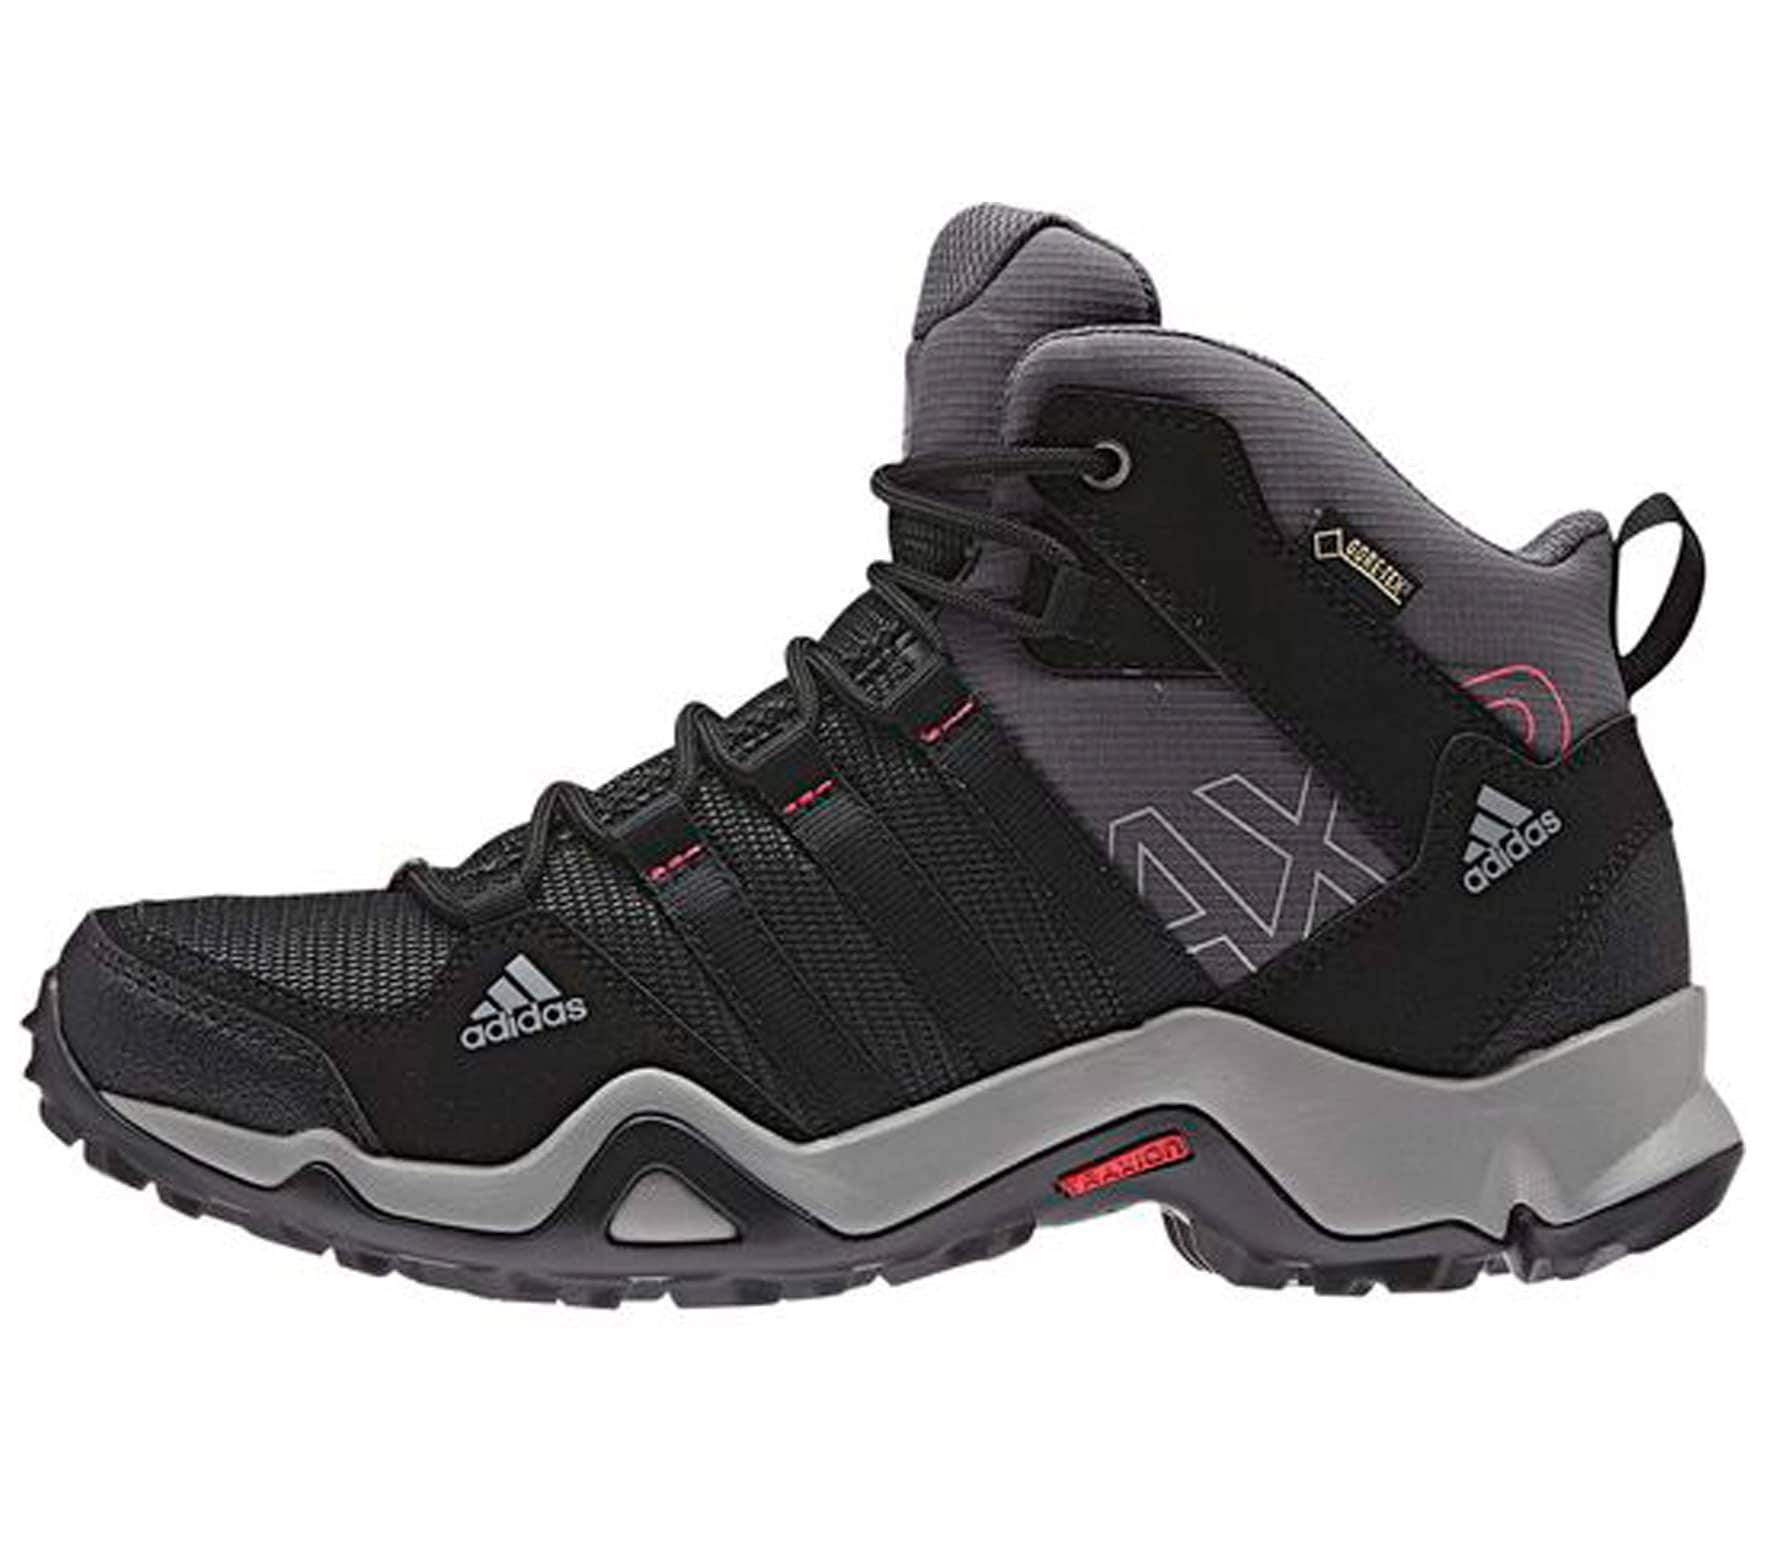 Adidas Gtx Women's Trekking Shoes Ax2 Mid Mujer Negro 6f7gby